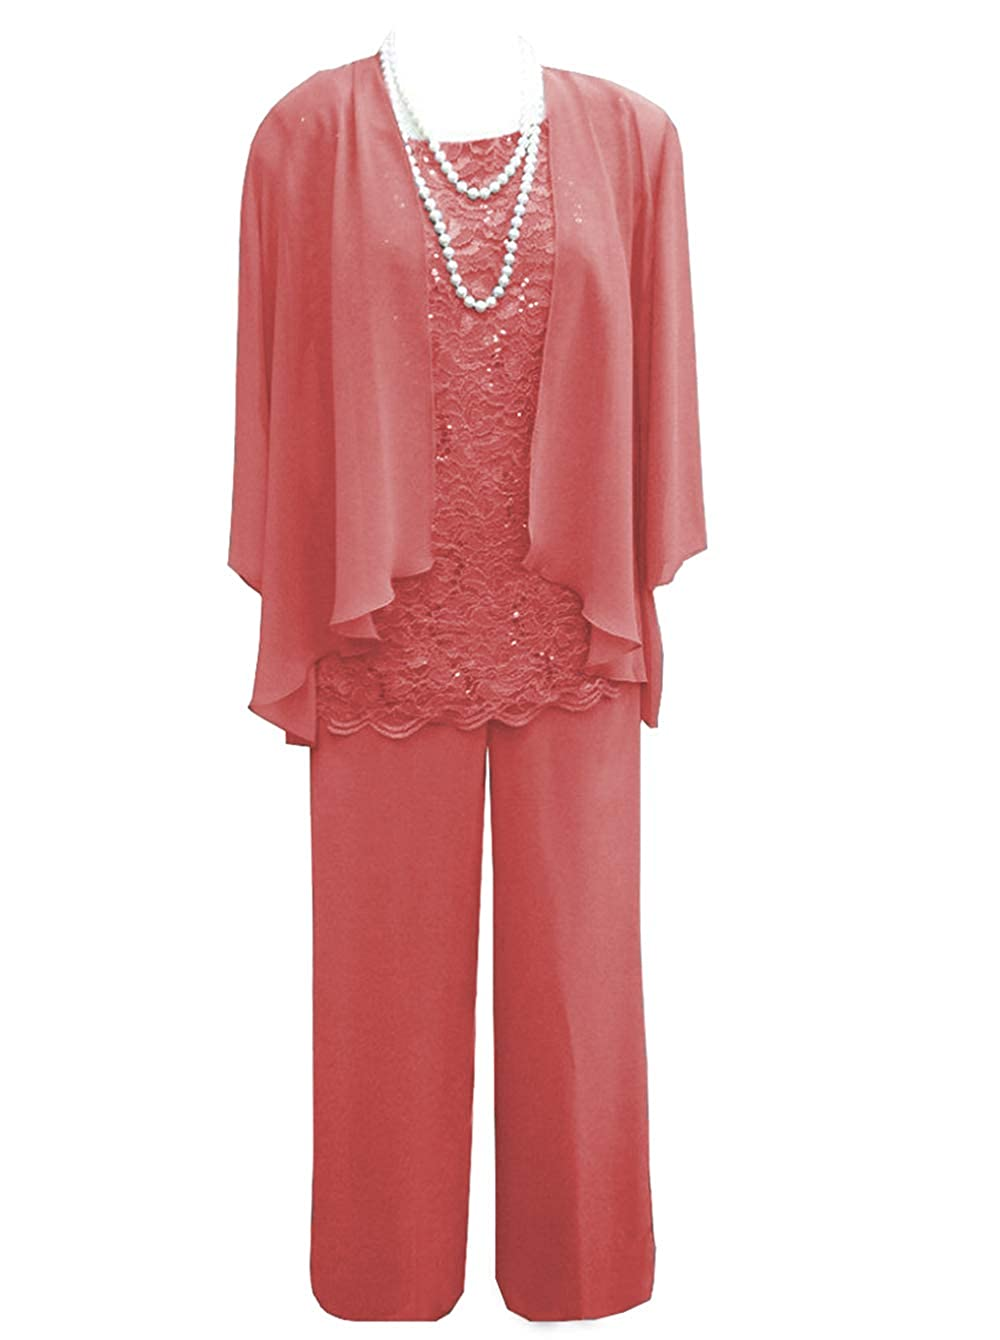 Womens 3 Pieces Lace Chiffon Mother of Bride Dress Pant Suits with Jacket Outfit for Wedding Groom